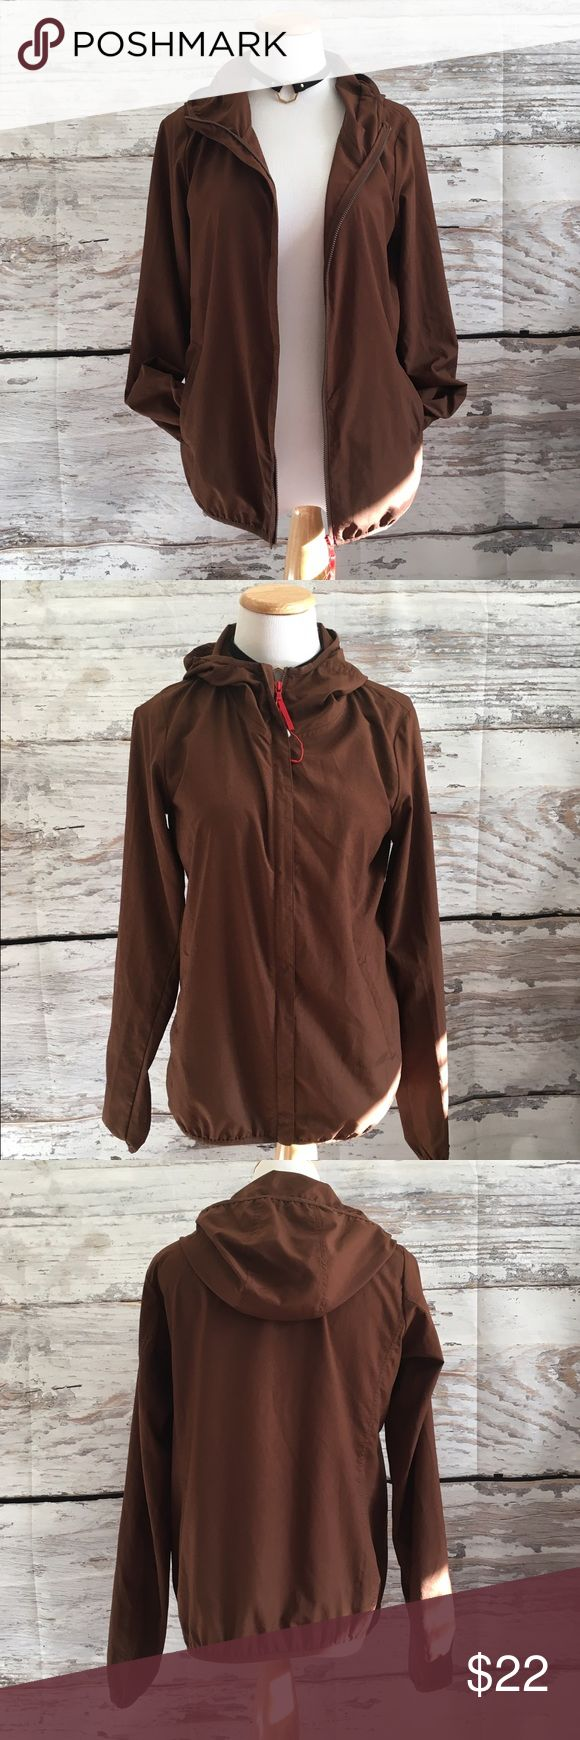 NWOT uniqlo ultra light brown windbreaker Never worn size small Uniqlo Jackets & Coats Utility Jackets